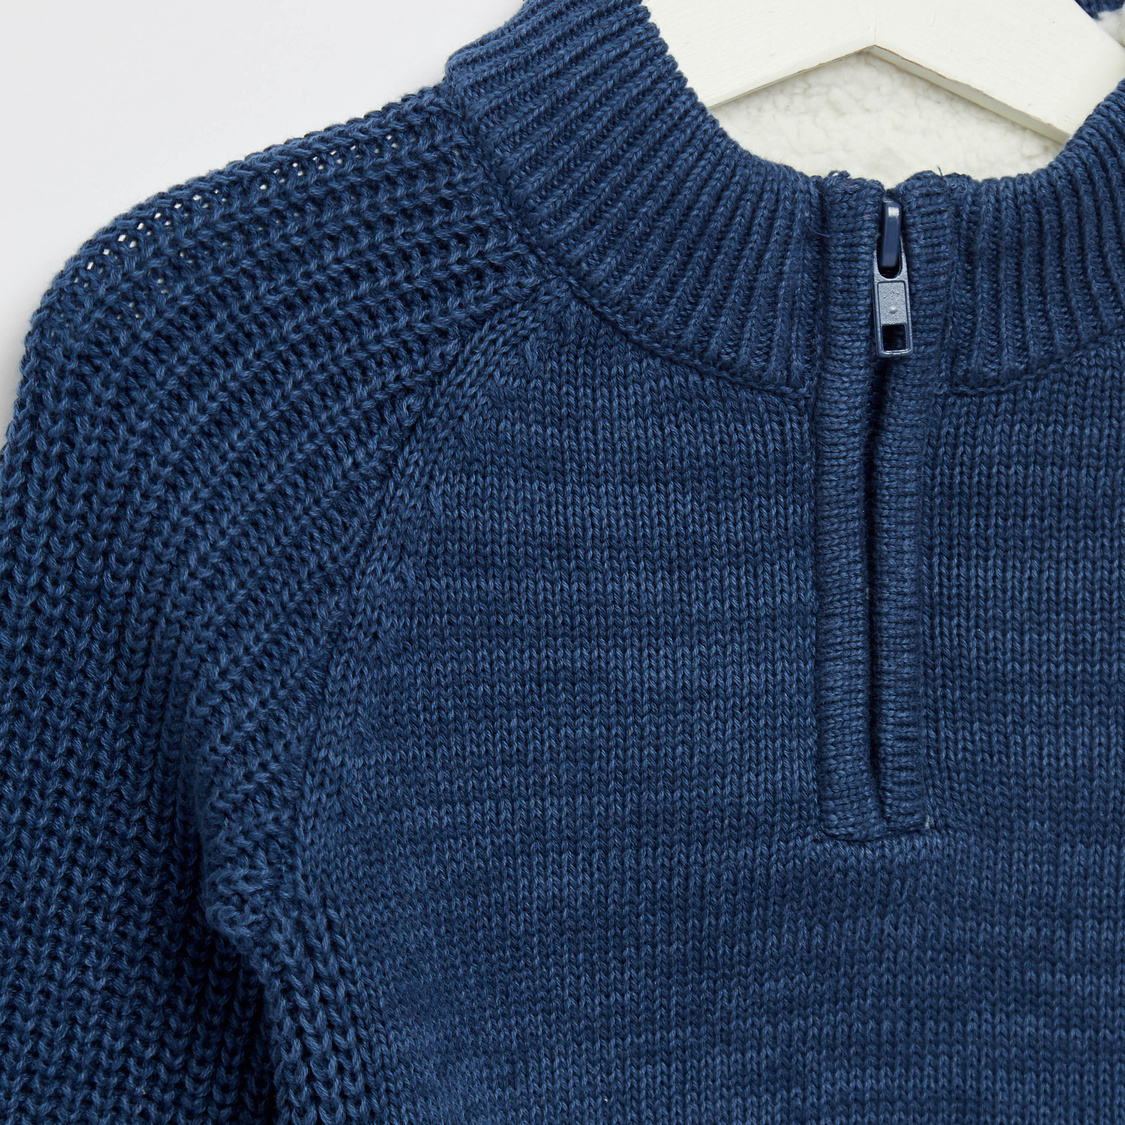 Textured High Neck Sweater with Long Sleeves and Zip Closure